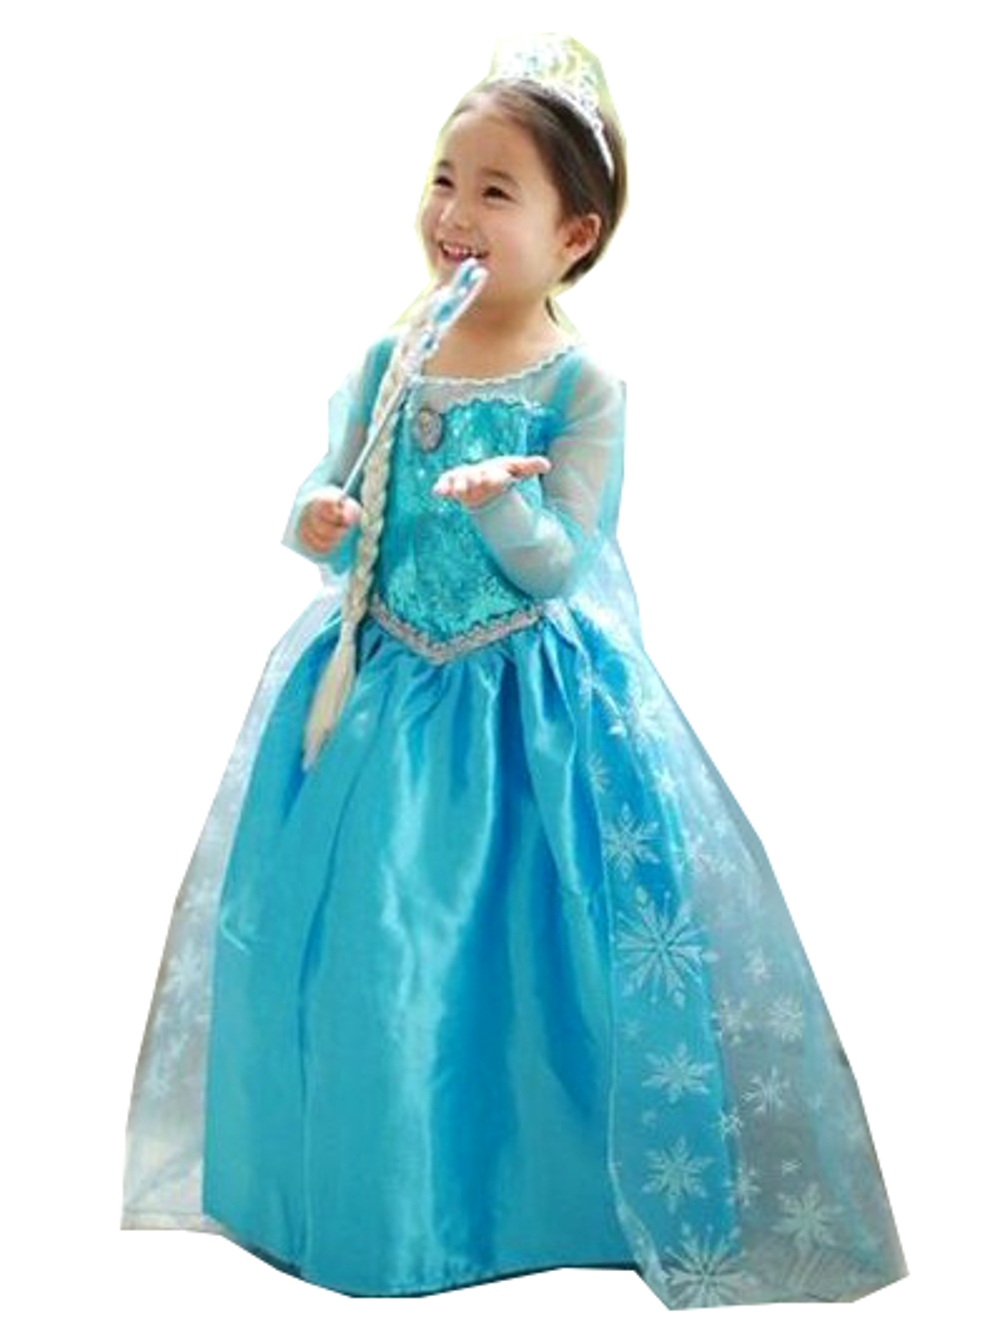 See and discover other items: frozen elsa dressup, frozen elsa, best costumes, Best frozen dresses for toddlers There's a problem loading this menu right now. Learn more about Amazon hereaupy06.gqs: K.